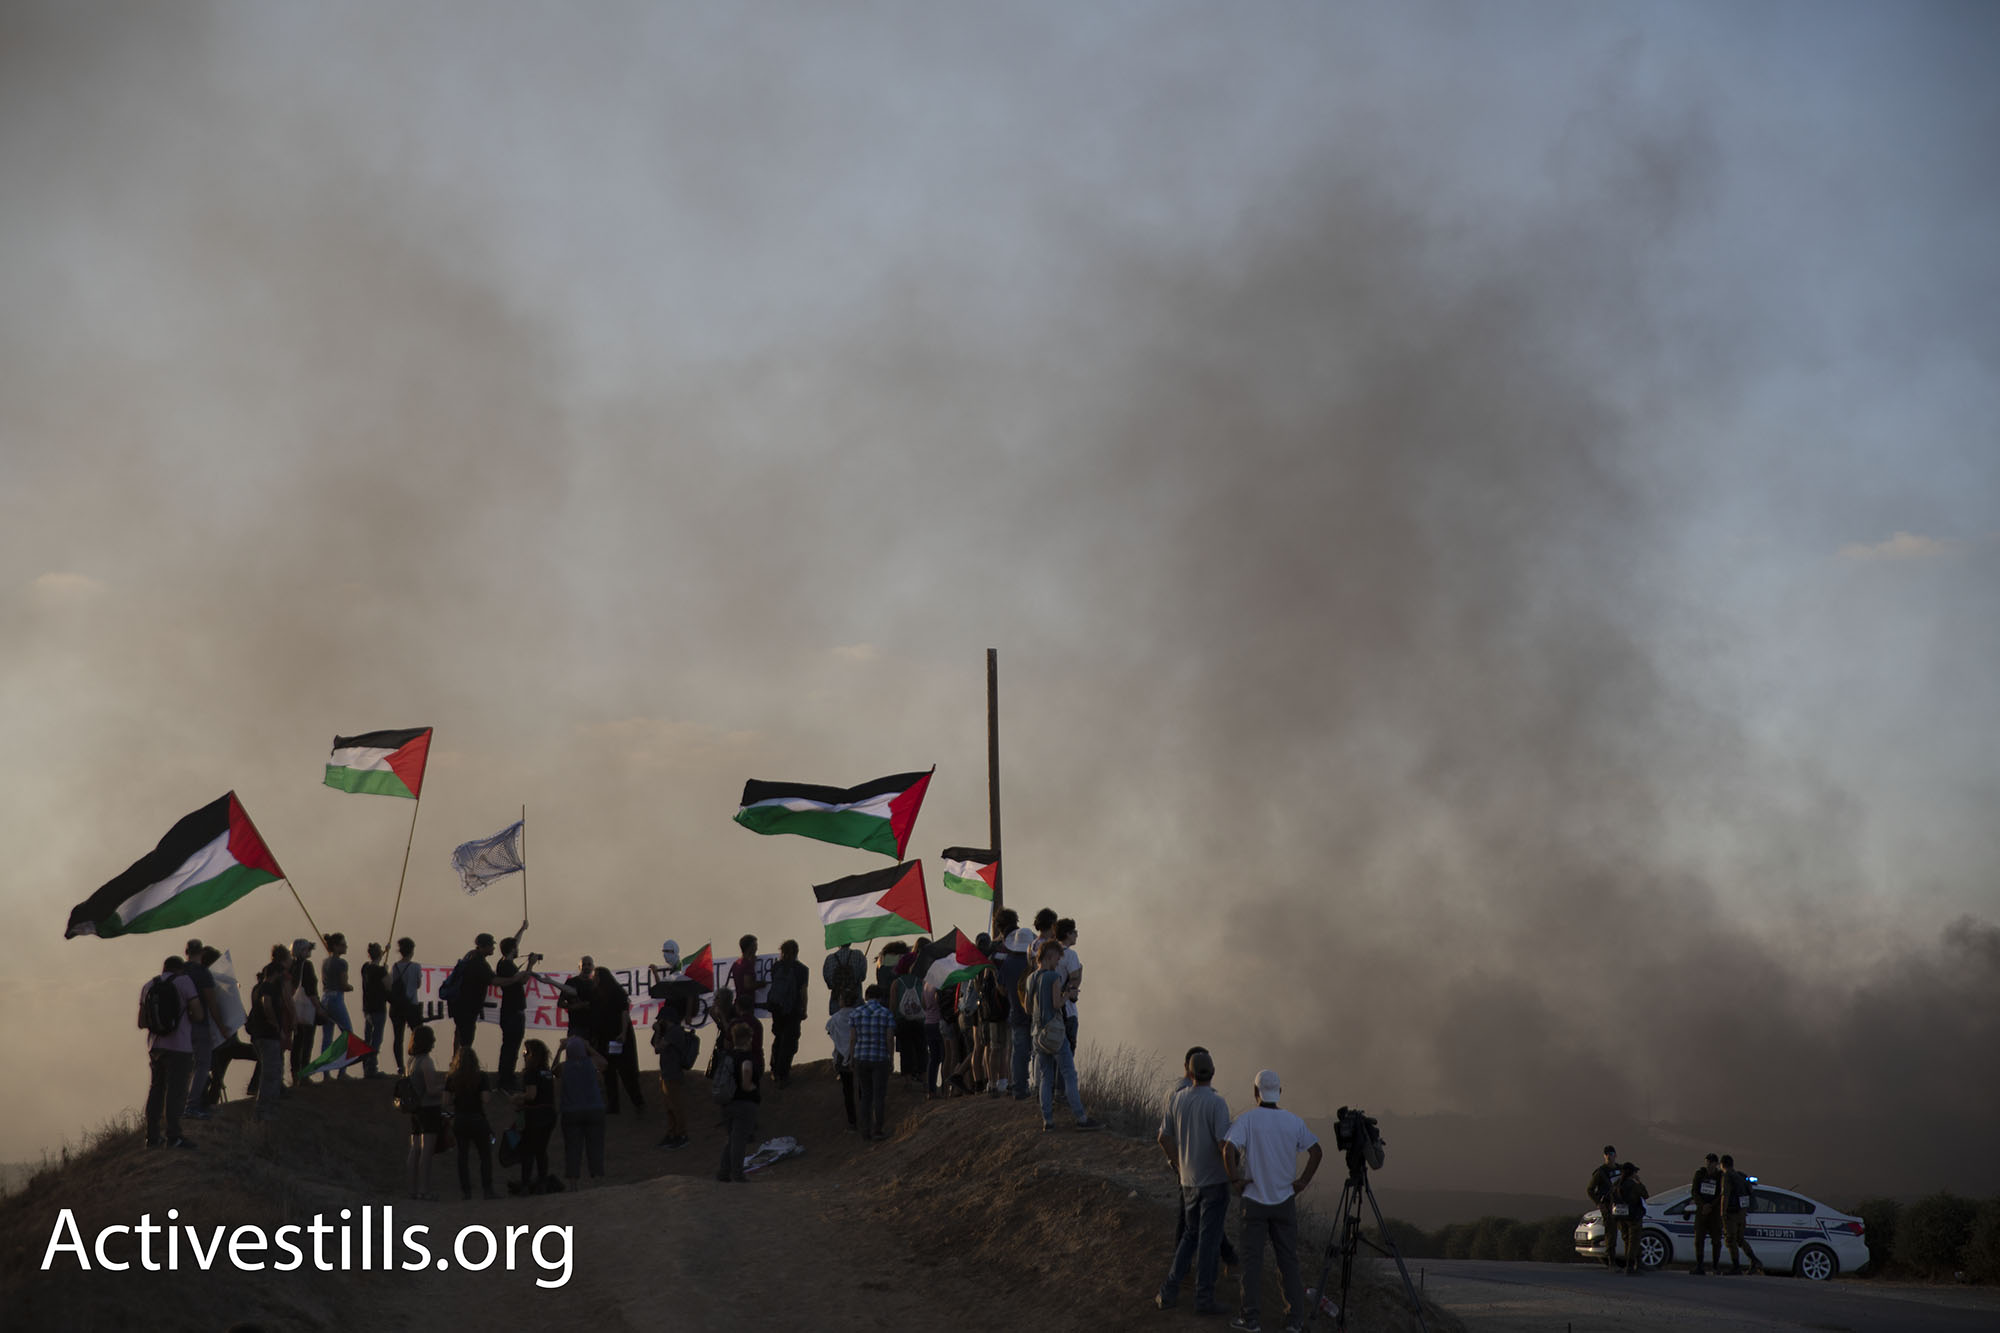 Activists on the Israeli side of the Gaza fence could see the smoke from burning tires, smell tear gas, and hear gunshots that Israeli soldiers fired at Palestinian protesters. (Oren Ziv/Activestills.org)